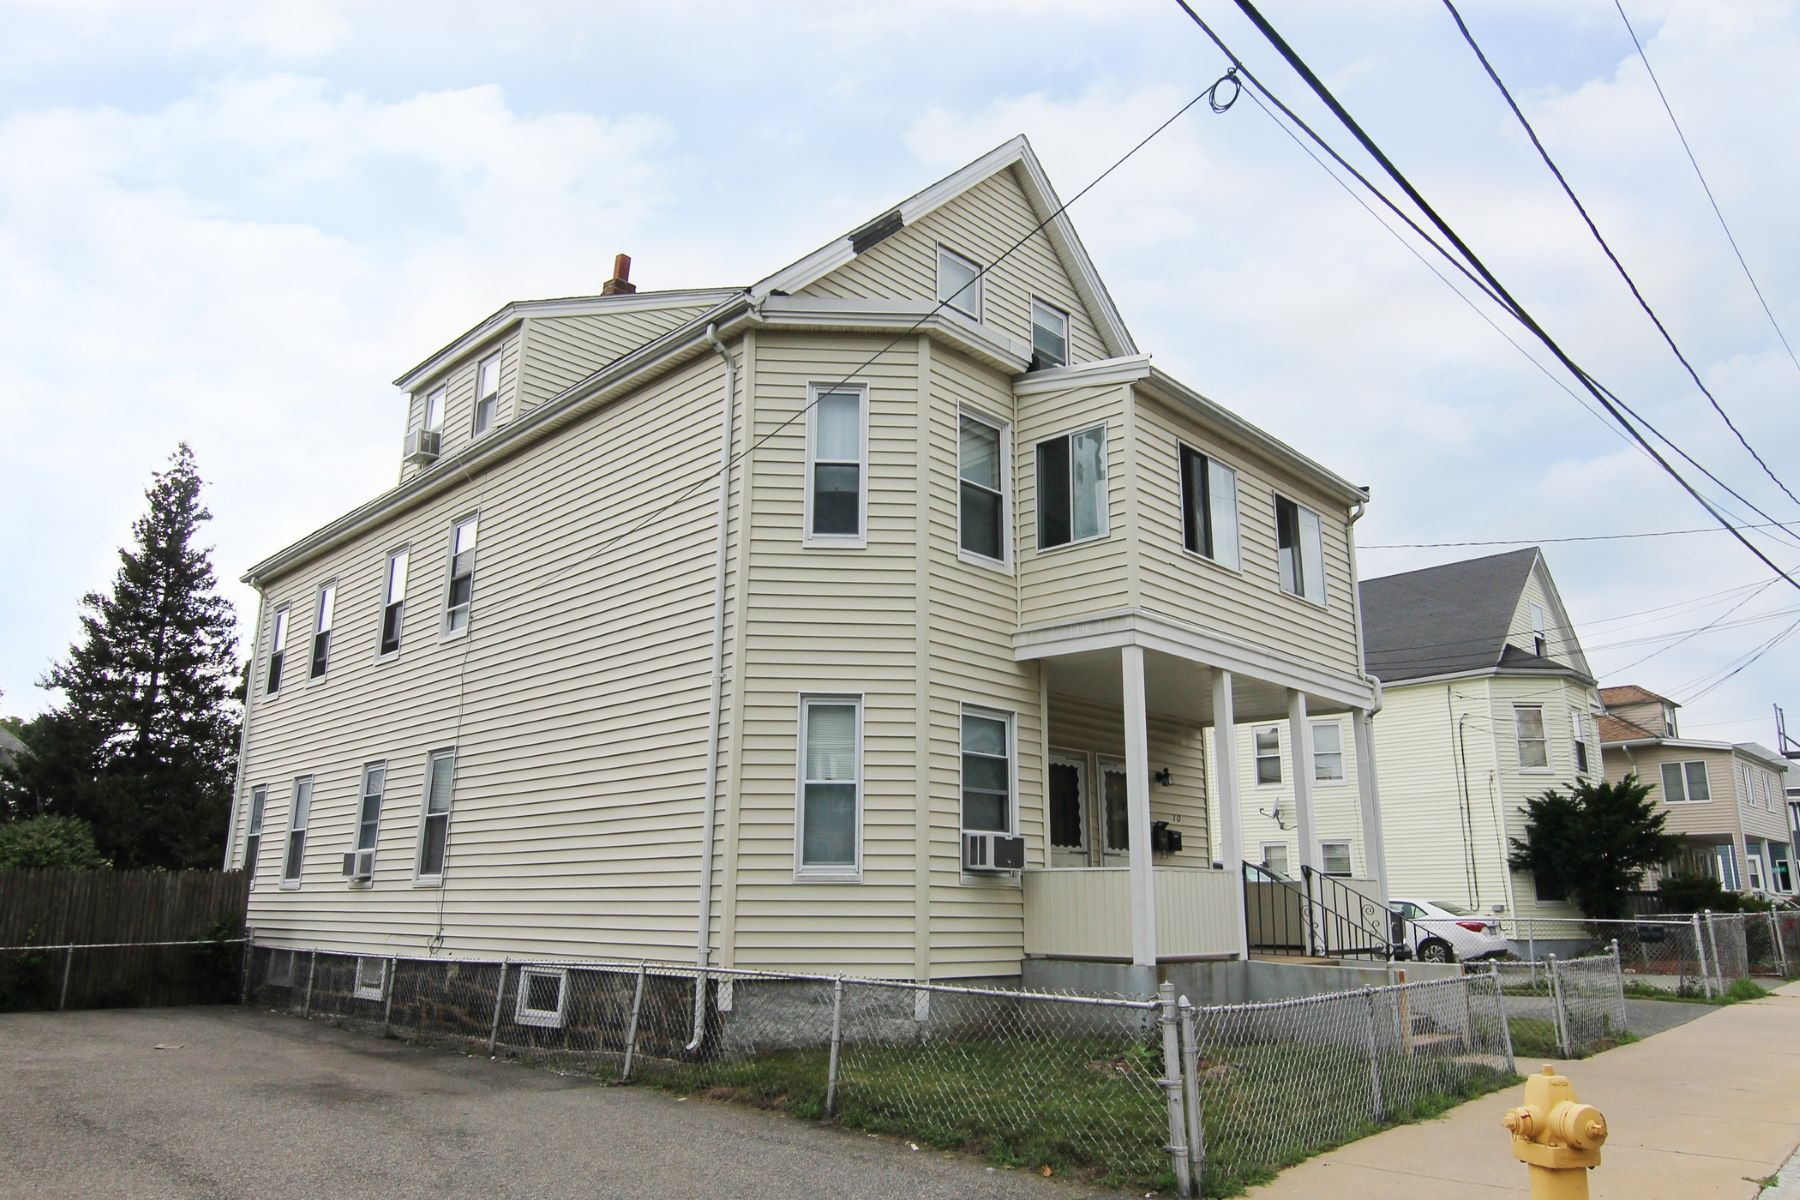 Multi-Family Homes for Sale at 8 Martin Street, Medford 8 Martin St Medford, Massachusetts 02155 United States